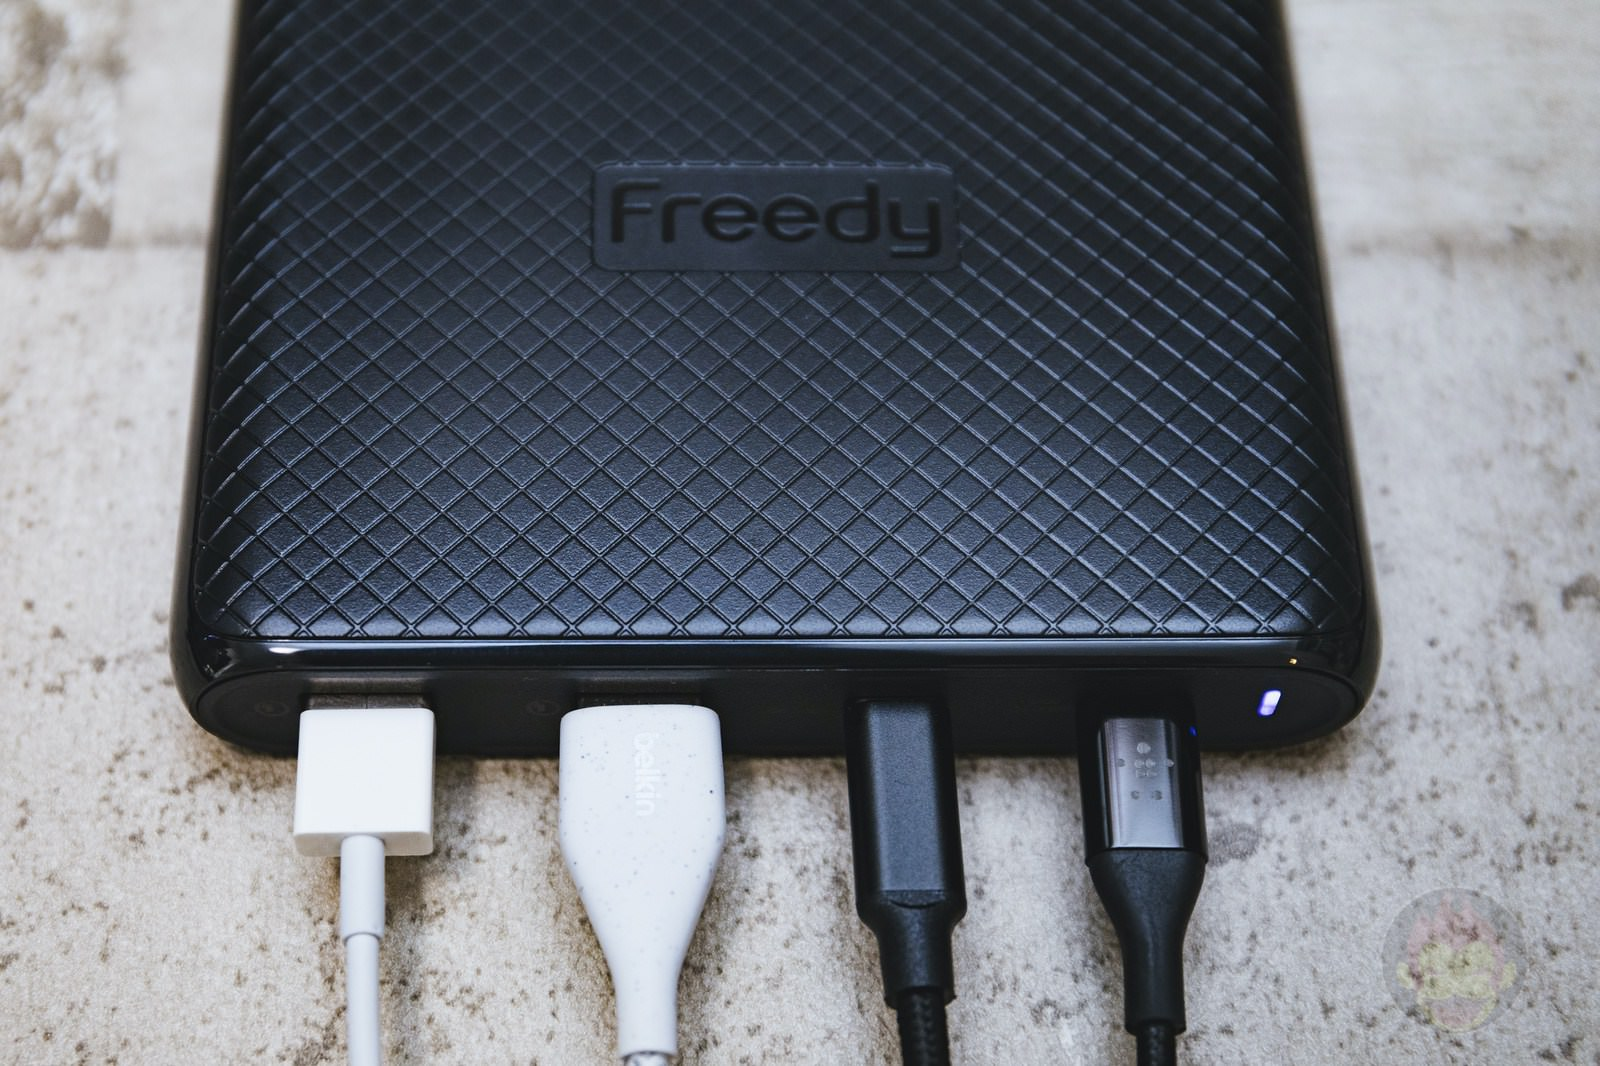 Freedy 90W Multiport Charger Review 09